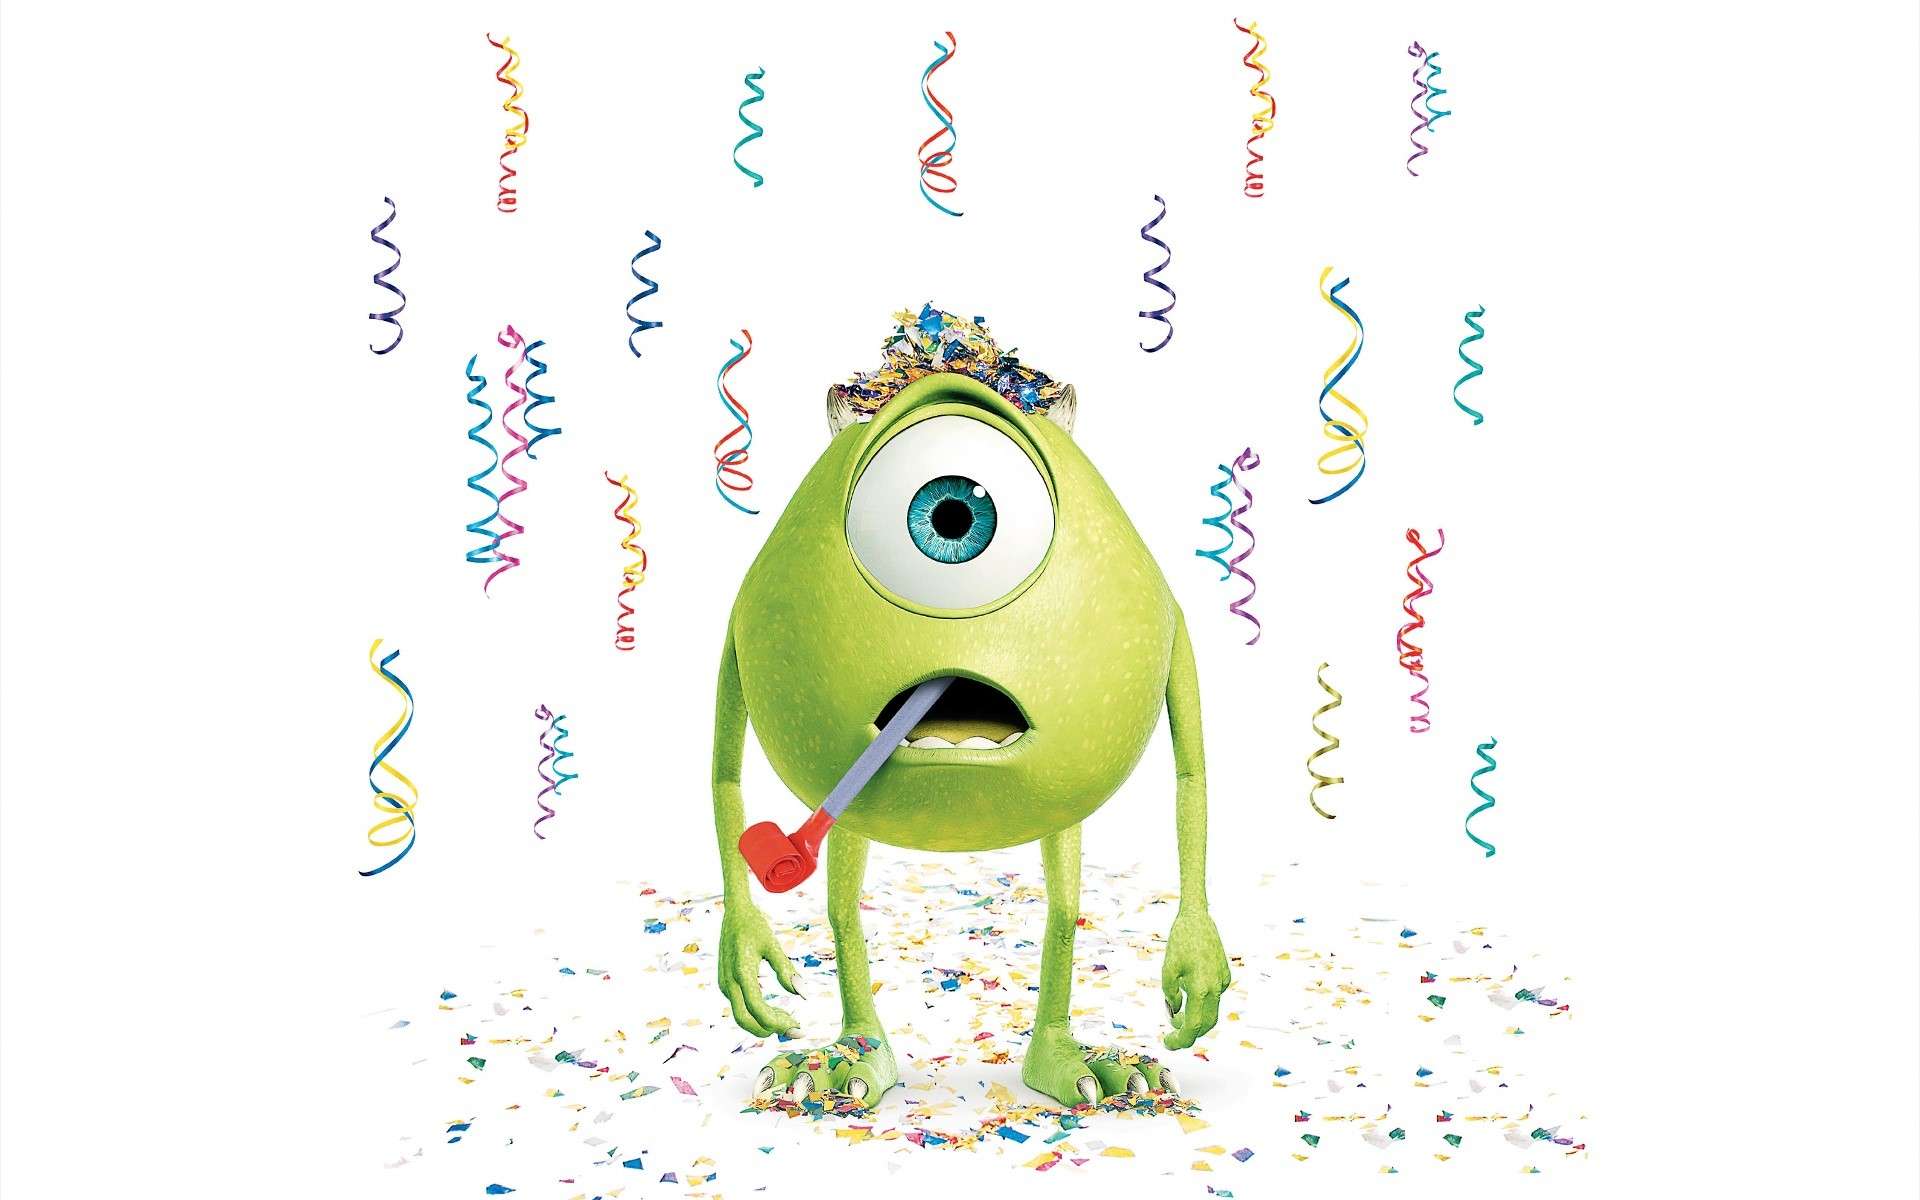 Wallpaper Mike Wazowski sorprendido